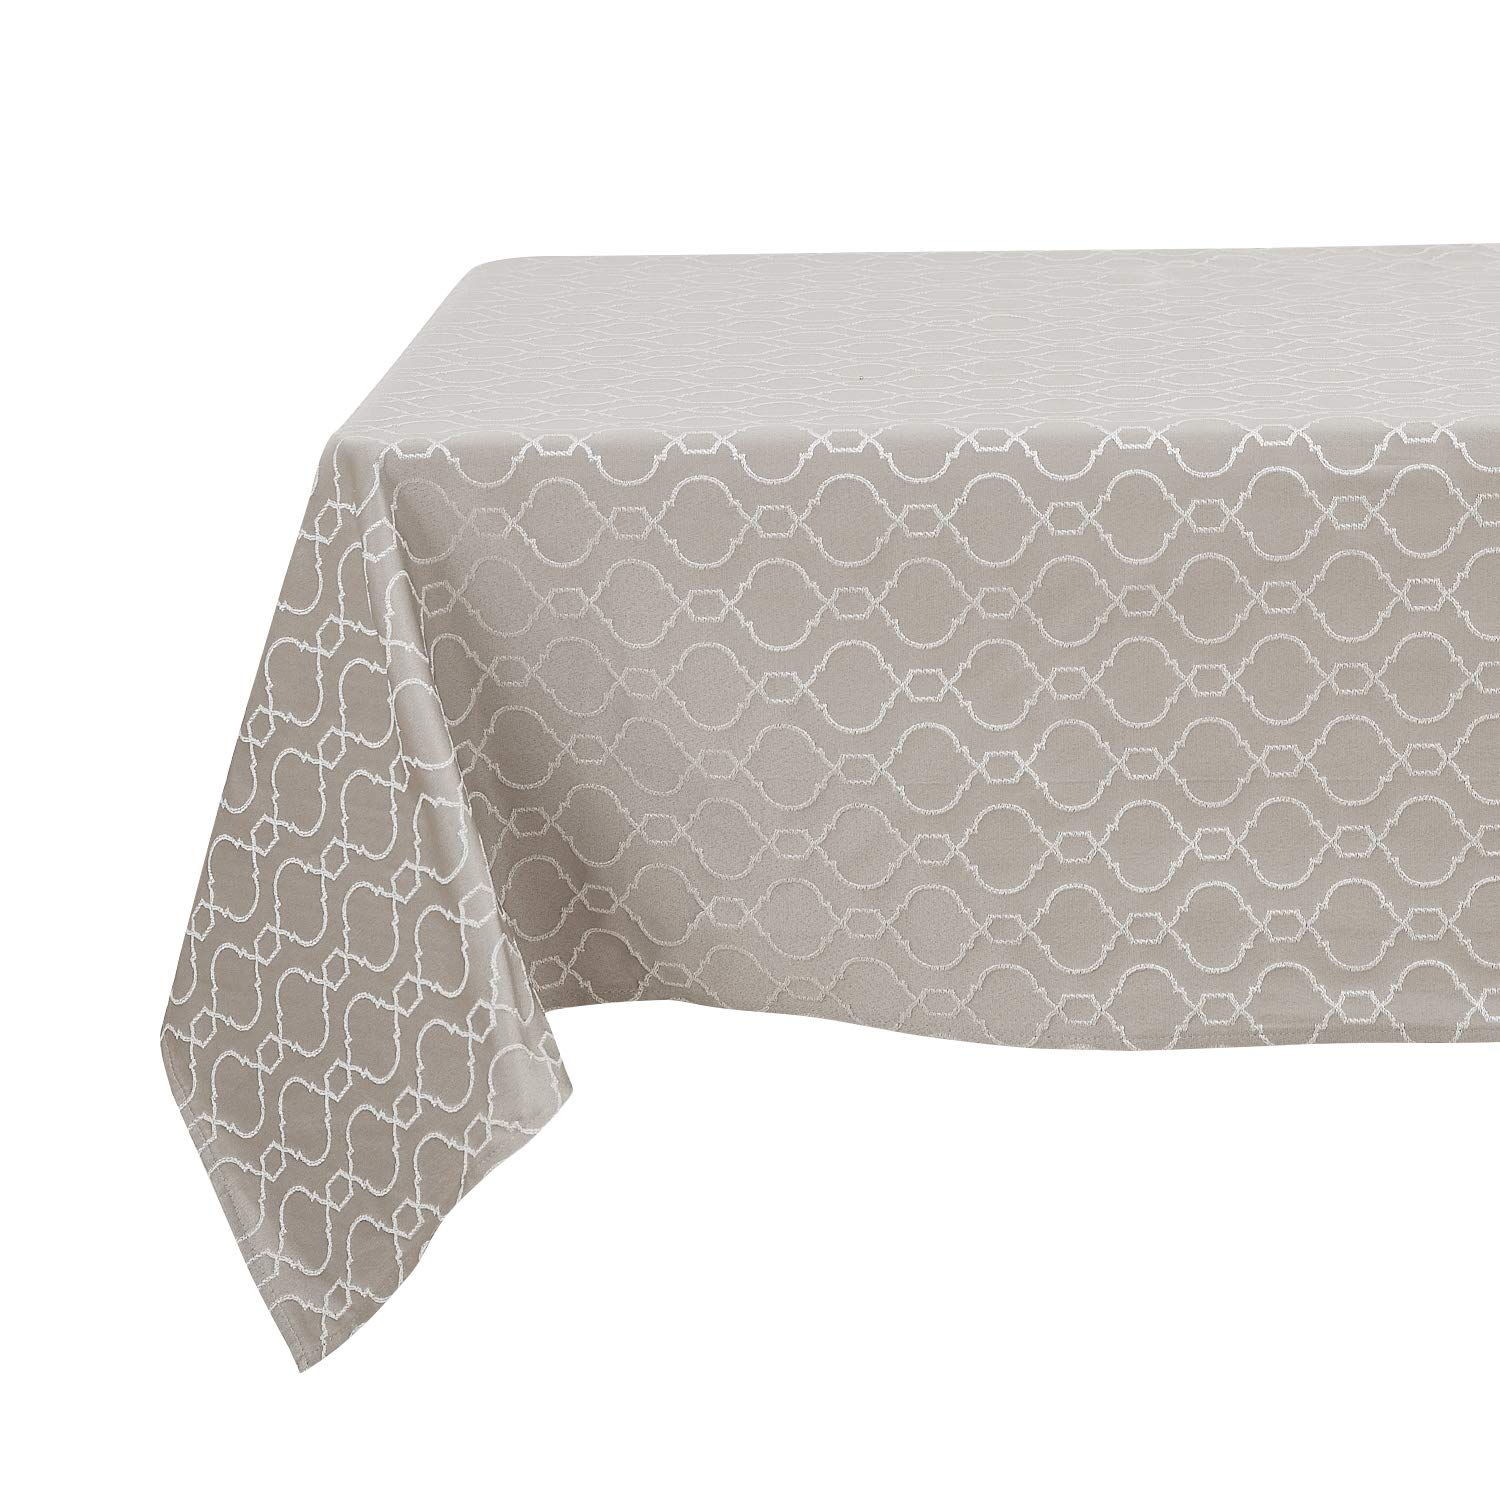 Deconovo Square Table Cloth Wrinkle Resistant Jacquard Morrocan Table Cover Spillproof Tablecloth for Restaurant 54x54 inch Light Khaki